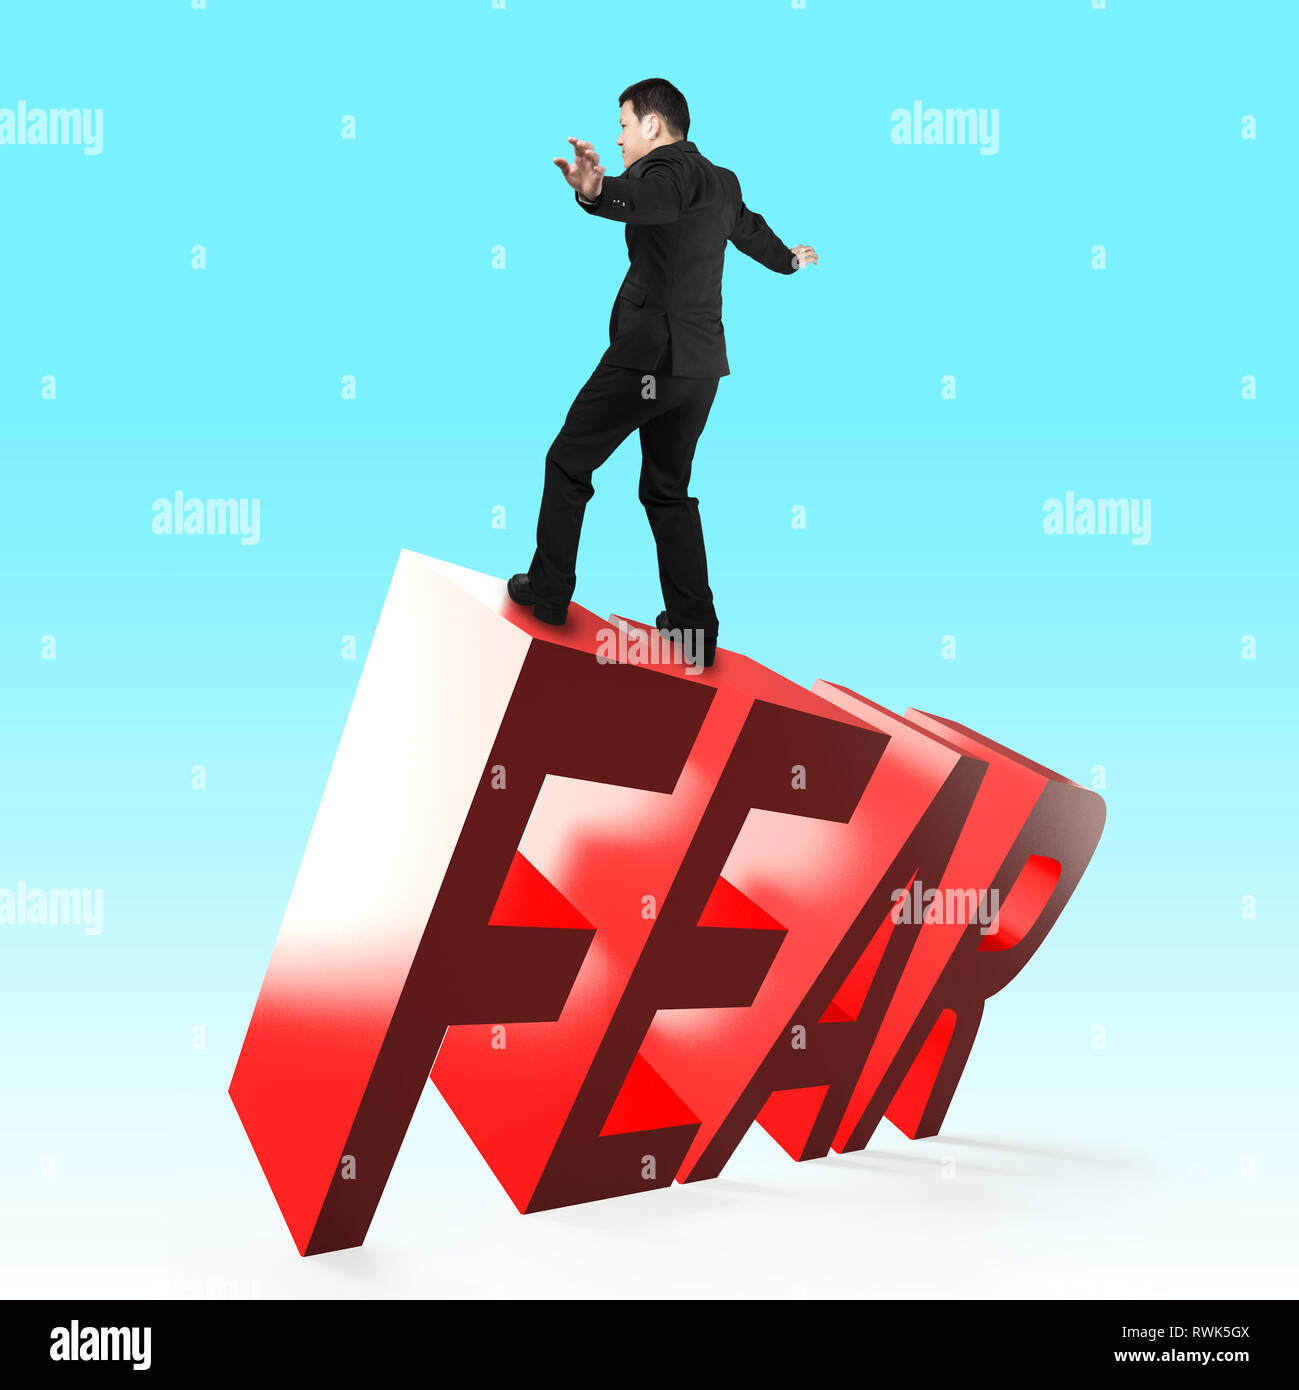 Businessman balancing on 3D red FEAR word falling. Concept of courage, overcoming fear and adversity. - Stock Image